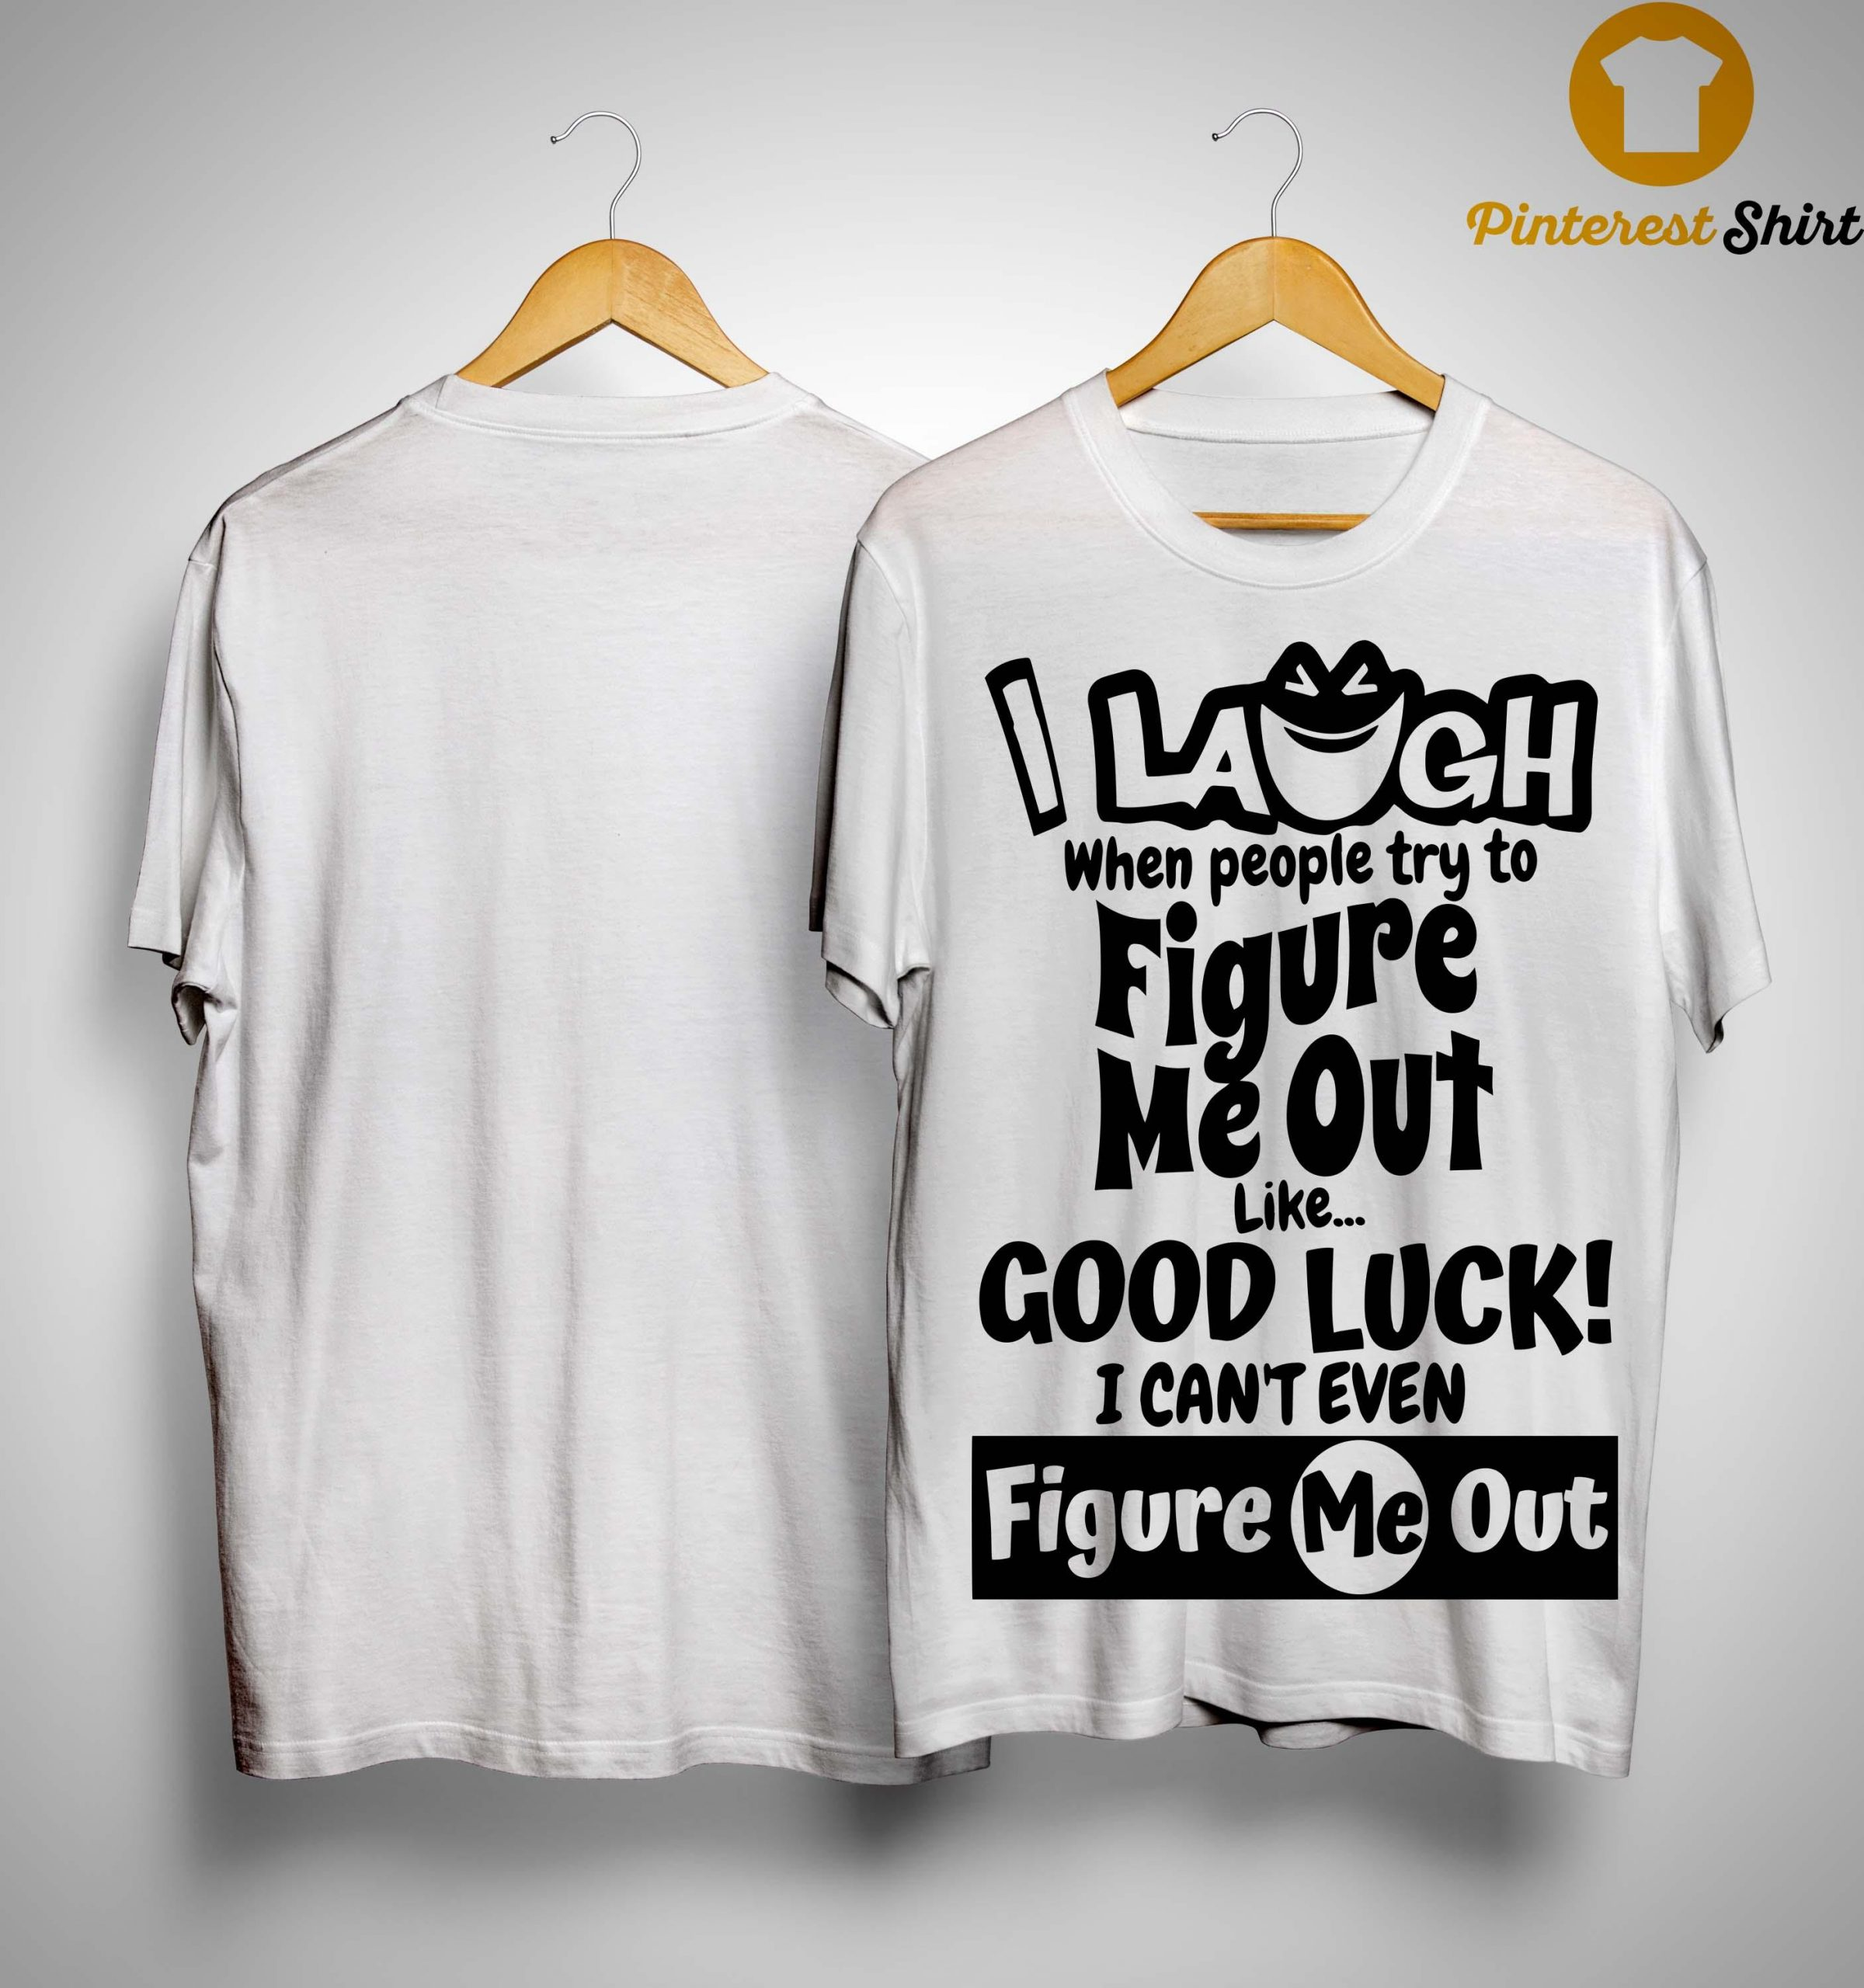 I Laugh When People Try To Figure Me Out Like Good Luck Shirt